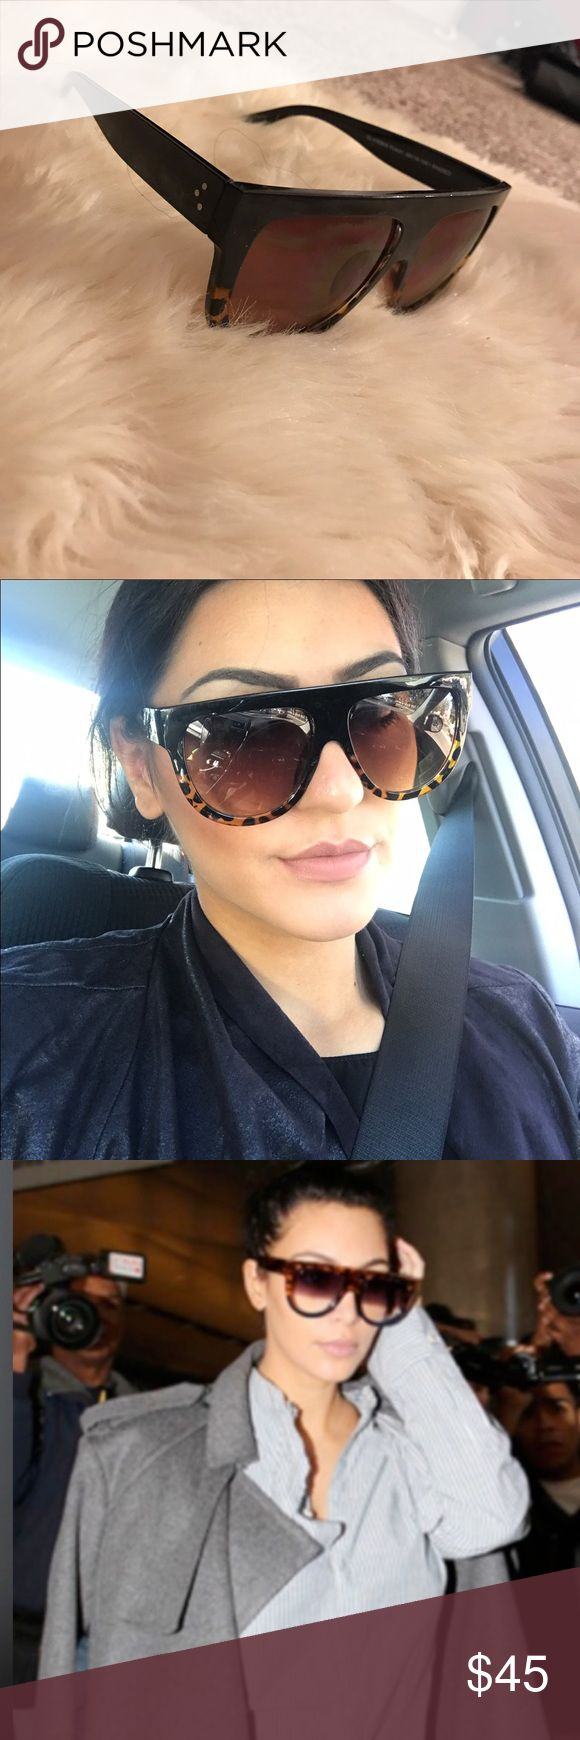 As seen on KIM Kardashian Celine flat top sunglasses 41026. Price reflects auth. These are dupes. My price is firm!!! Celine Accessories Sunglasses